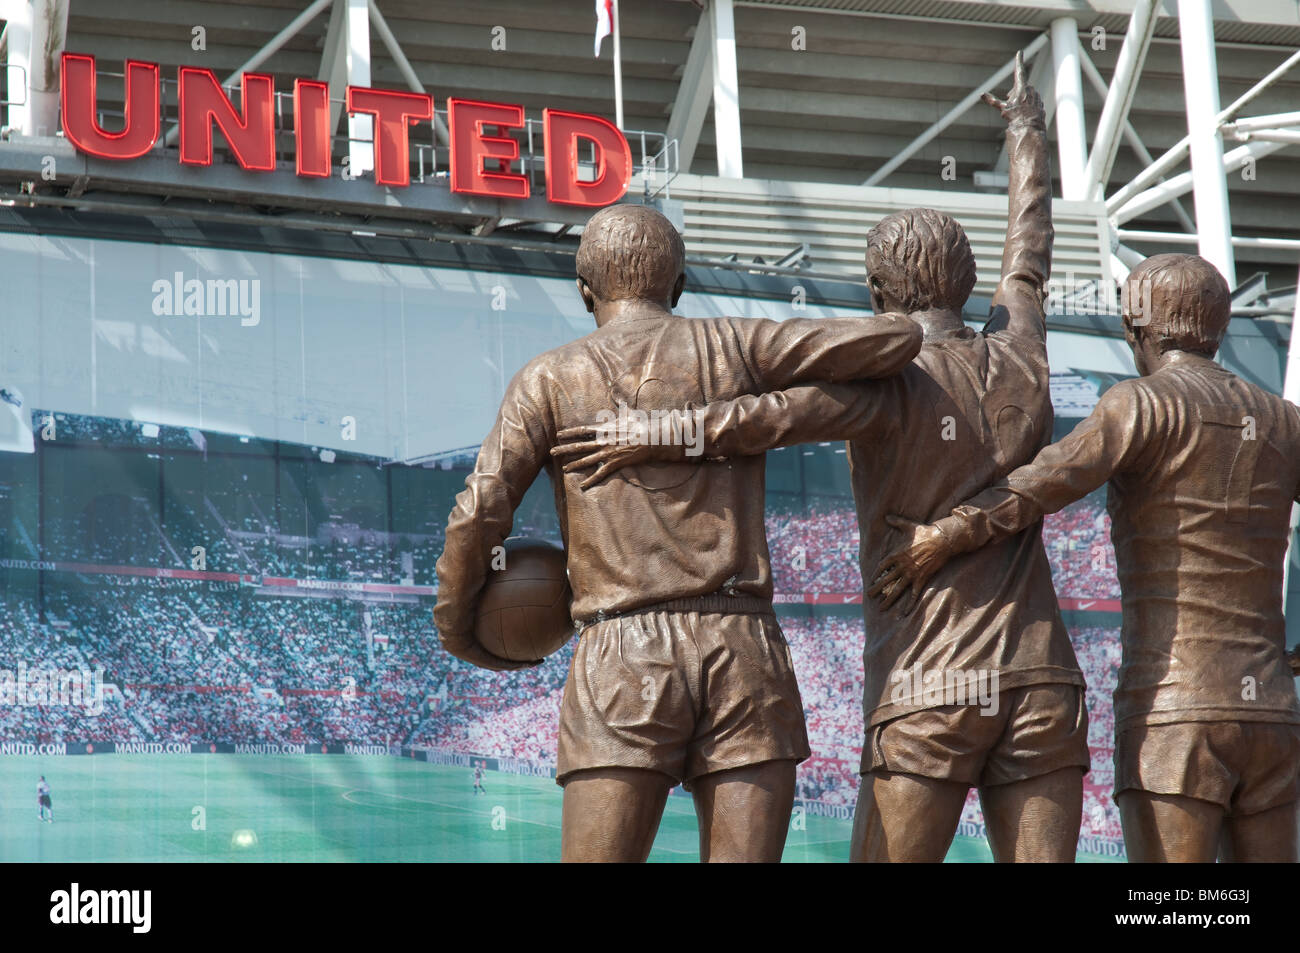 Manchester United, Holy Trinity statue at Old Trafford ,Manchester, England - Stock Image